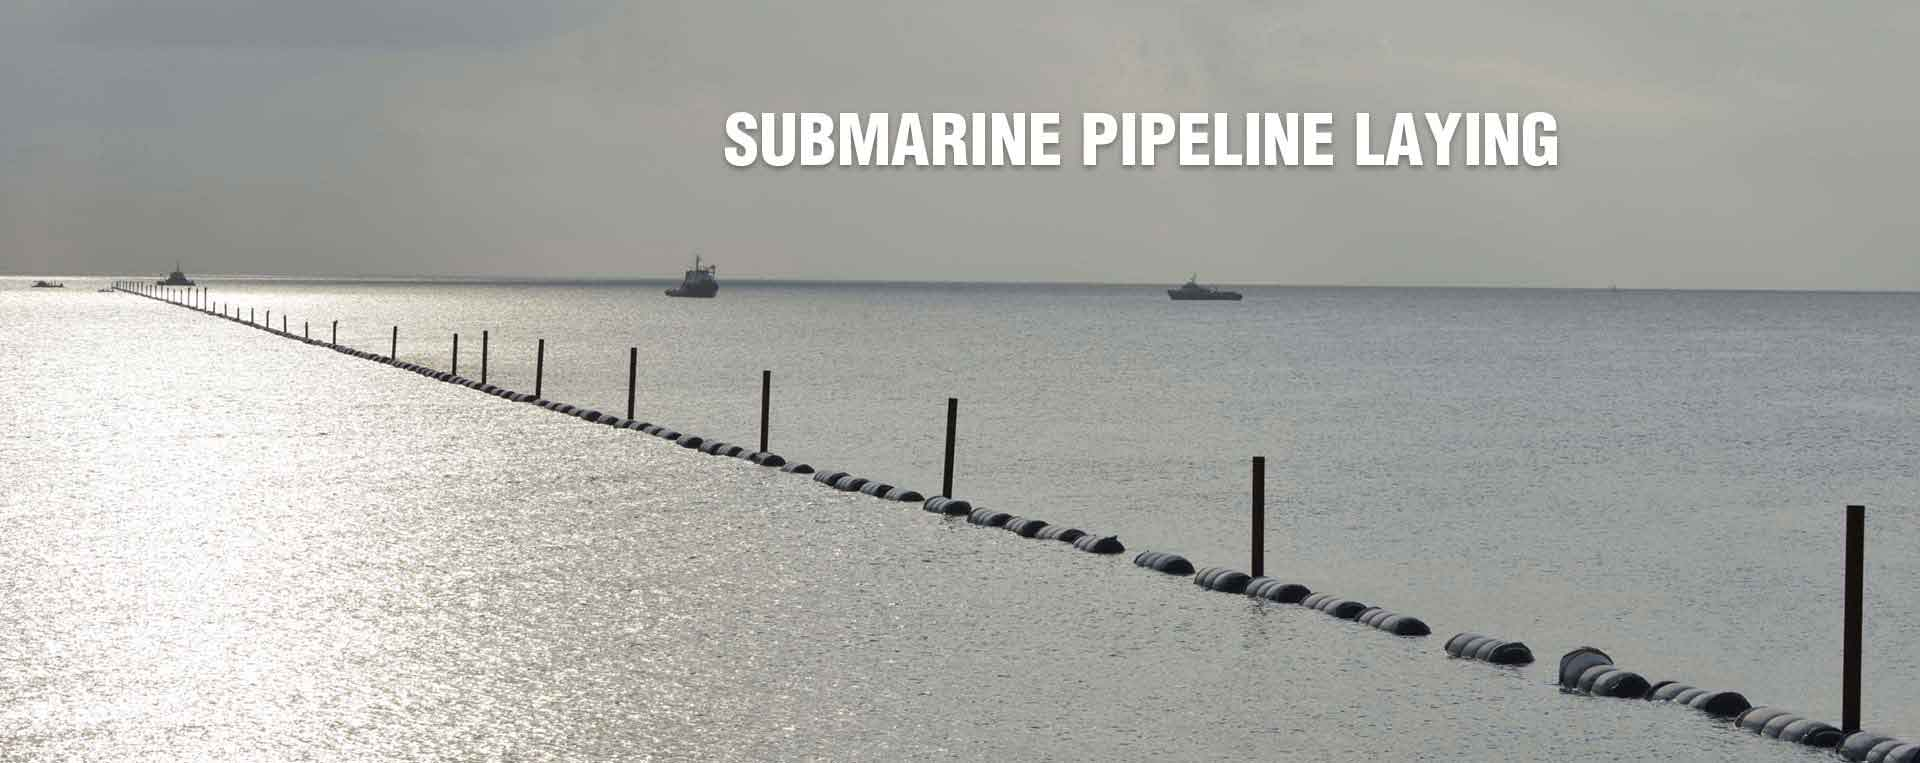 Submarine Oil & Gas Pipeline Laying and Repairing